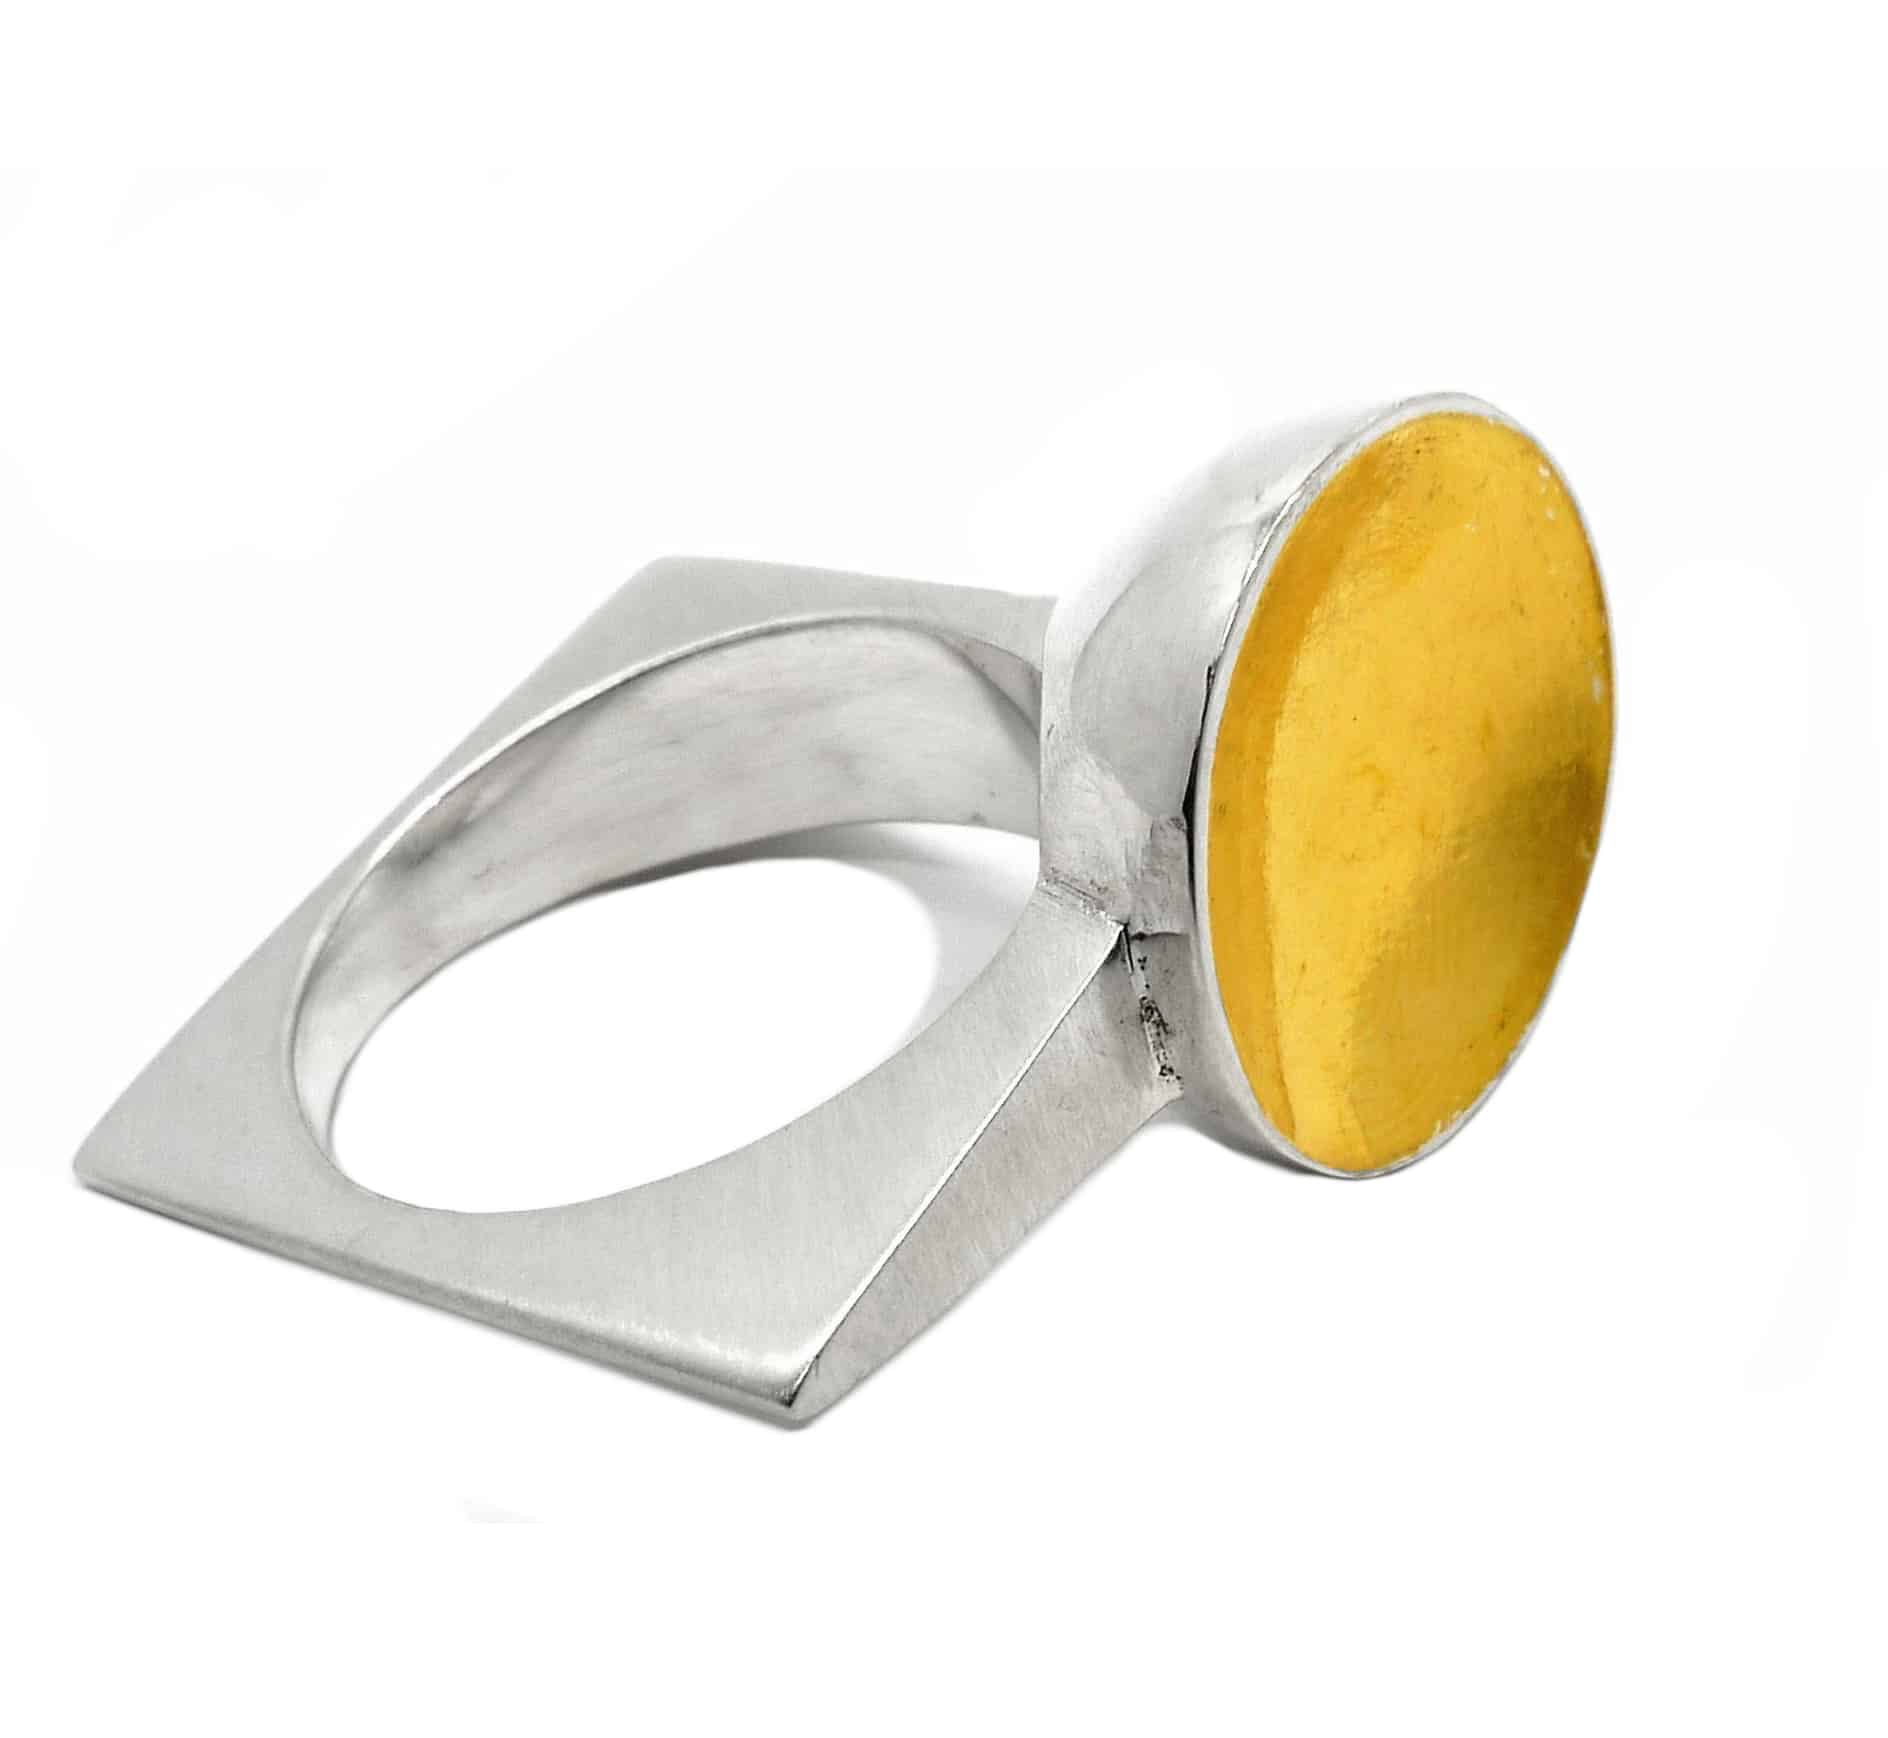 Tamaya Ring, Size M, Sterling Silver Ring With 24 Carat Gold Foil, By R-Process